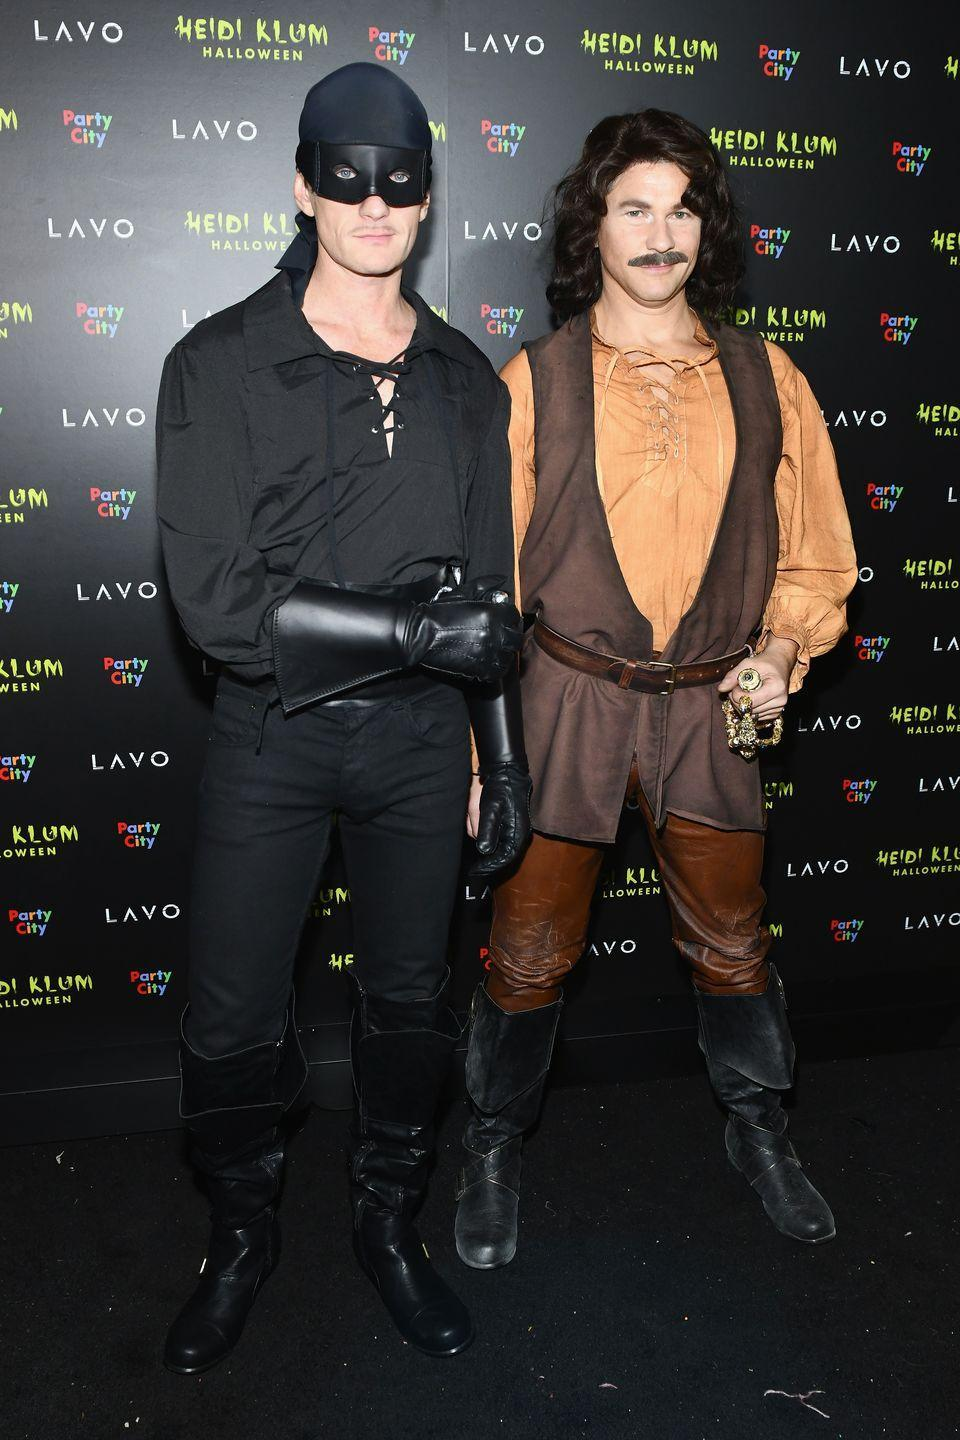 <p>We wonder how the couple decided who would be Zorro and who would dress as his sidekick, Bernardo. Either way, Neil Patrick Harris and David Burtka crushed it, per usual. </p>